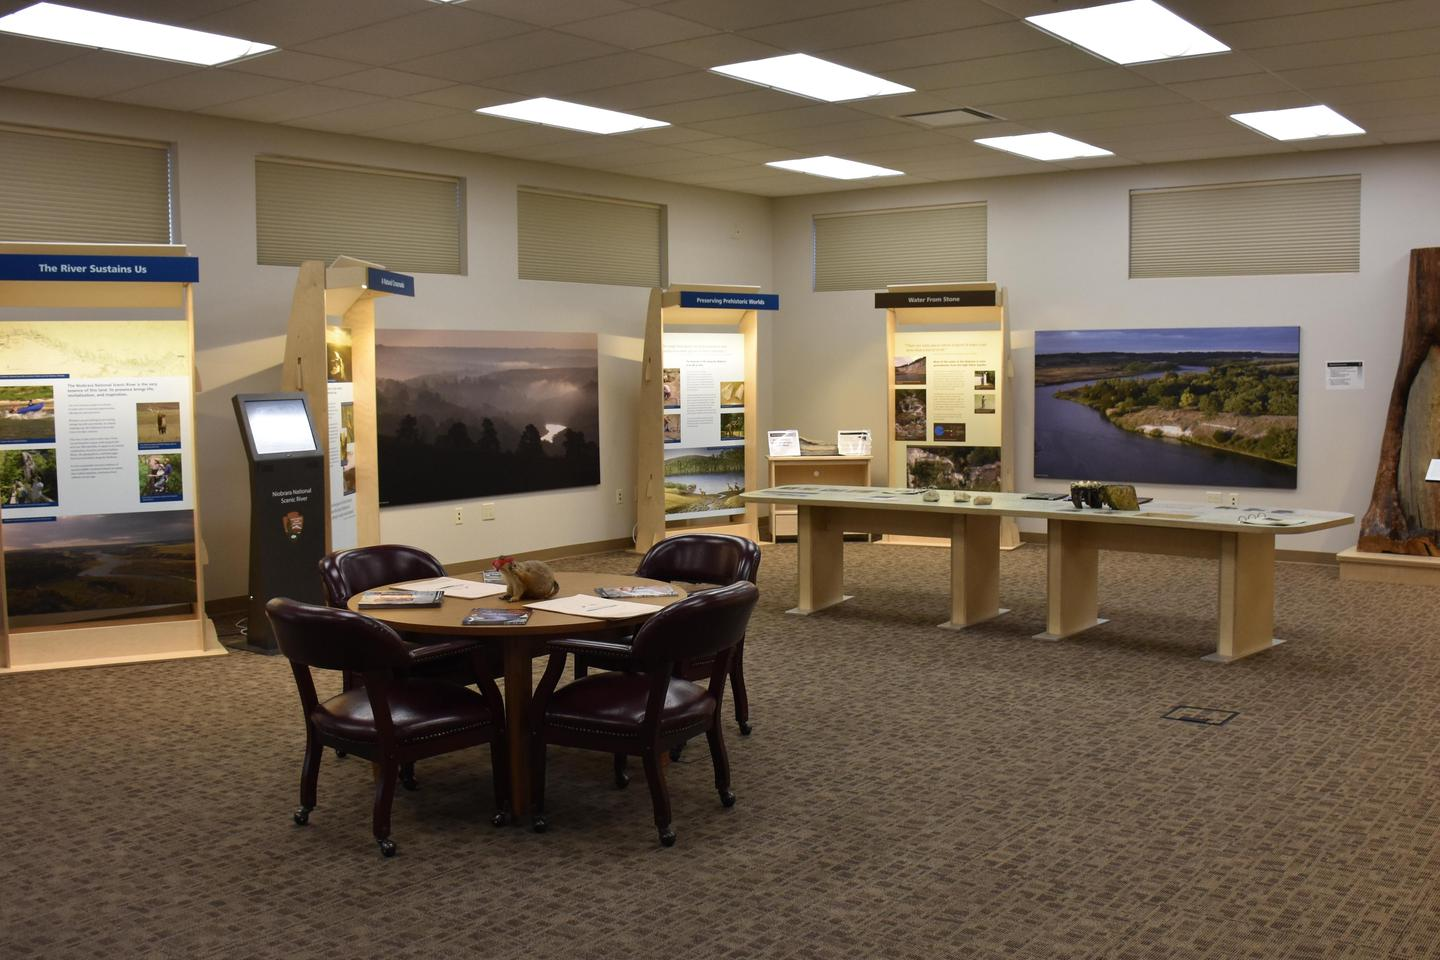 Niobrara National Scenic River Visitor Center InteriorOur Visitor Center has exhibits with photos and information about the park along with activities and films